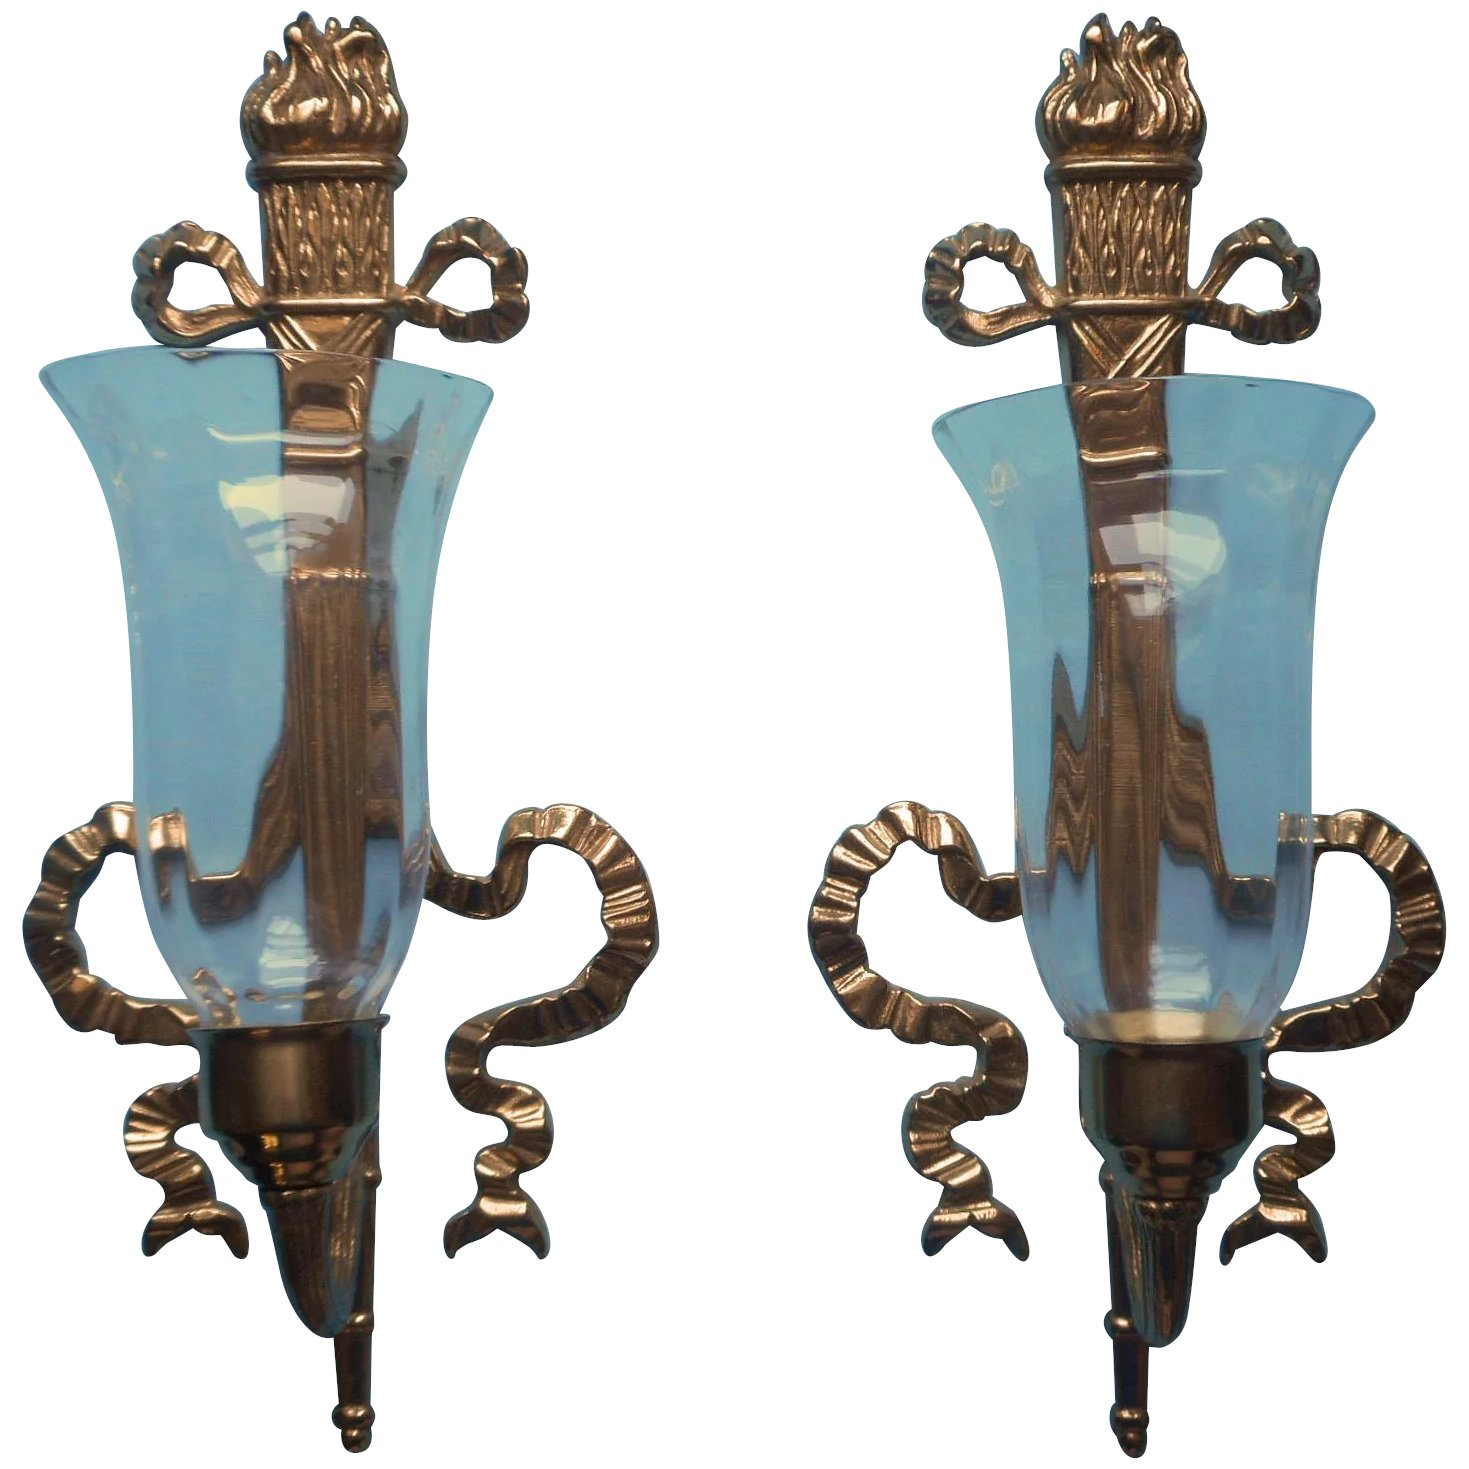 Image of: Bombay Company Pair Brass Candle Sconces Ribbon Bows Torches Vintage Mercy Maude Ruby Lane